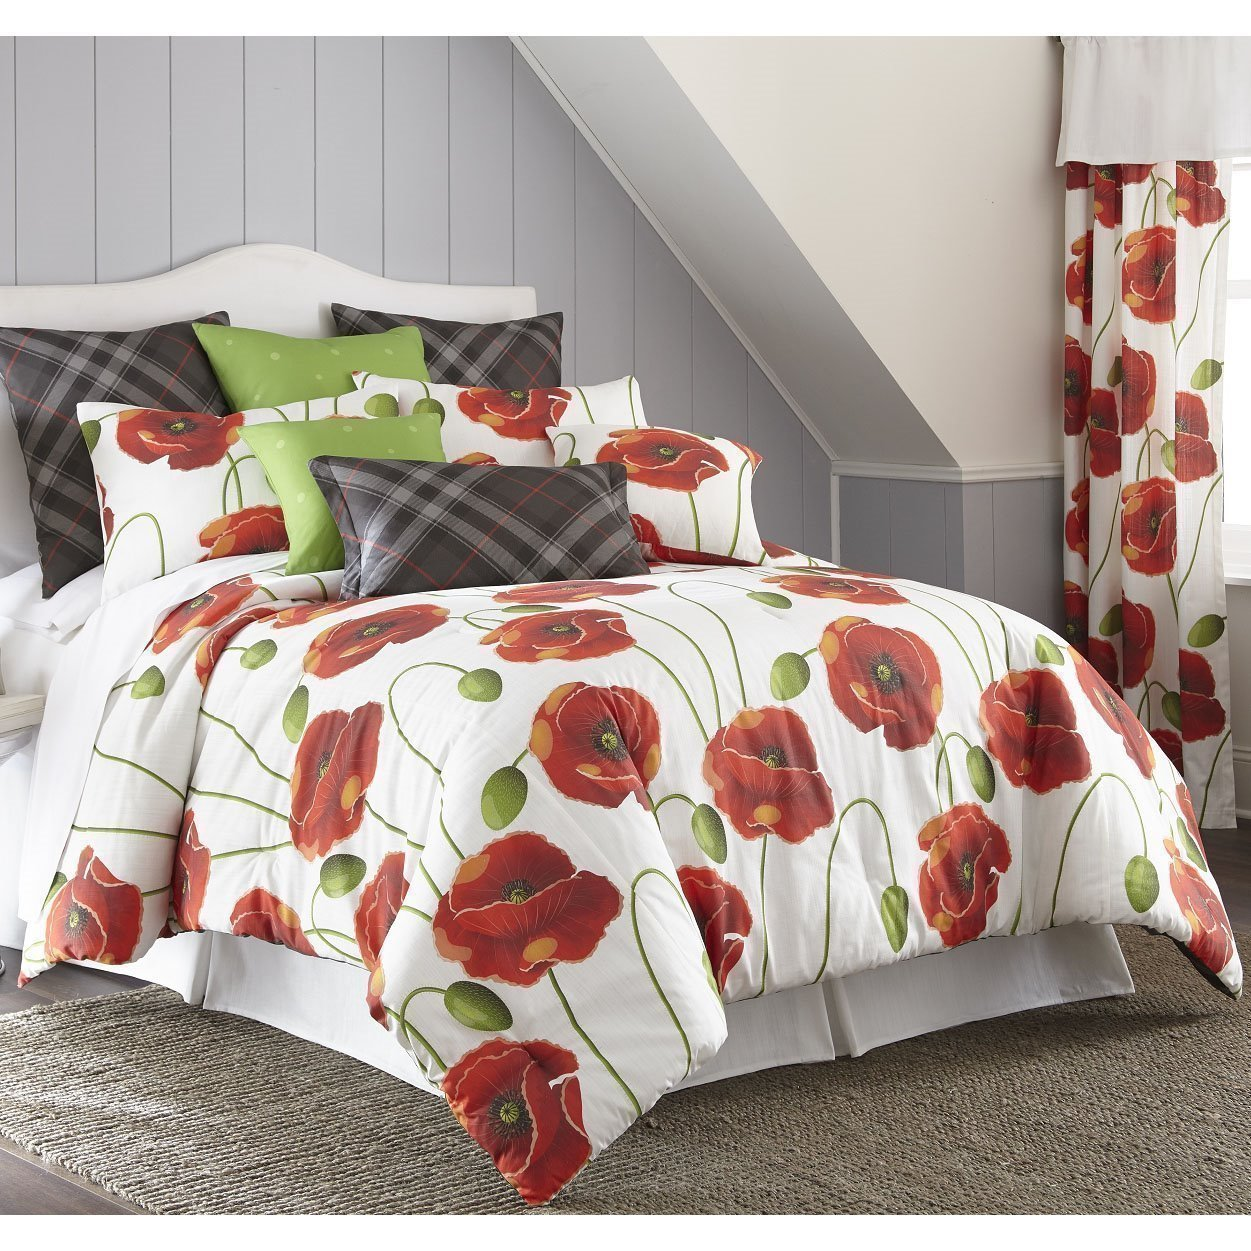 Poppy Plaid Duvet Cover Set Full Size